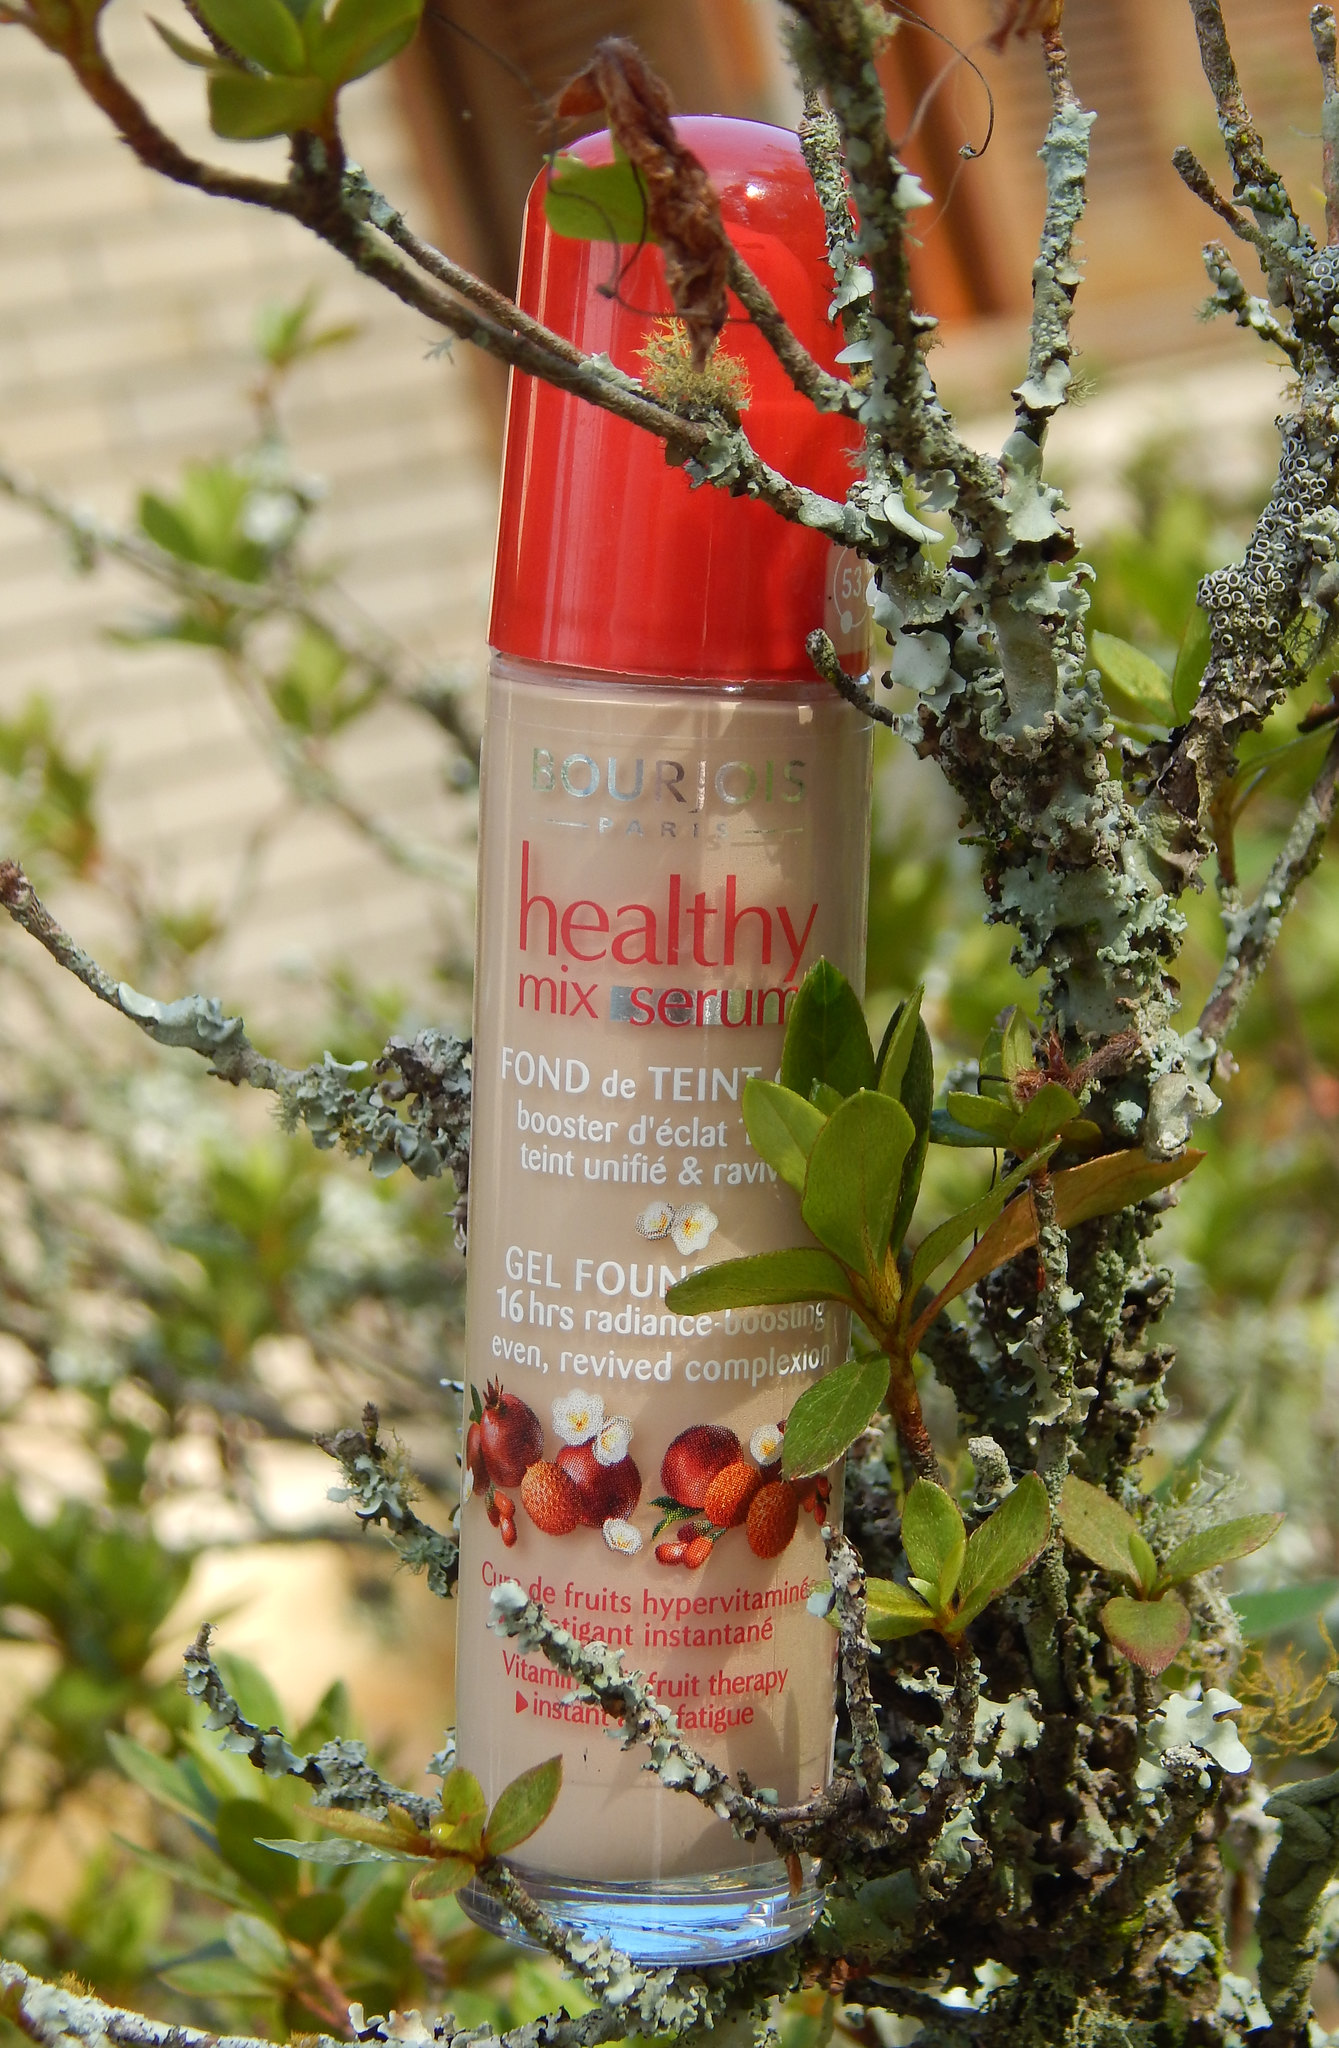 Base Healthy Mix Serum Bourjois – Resenha